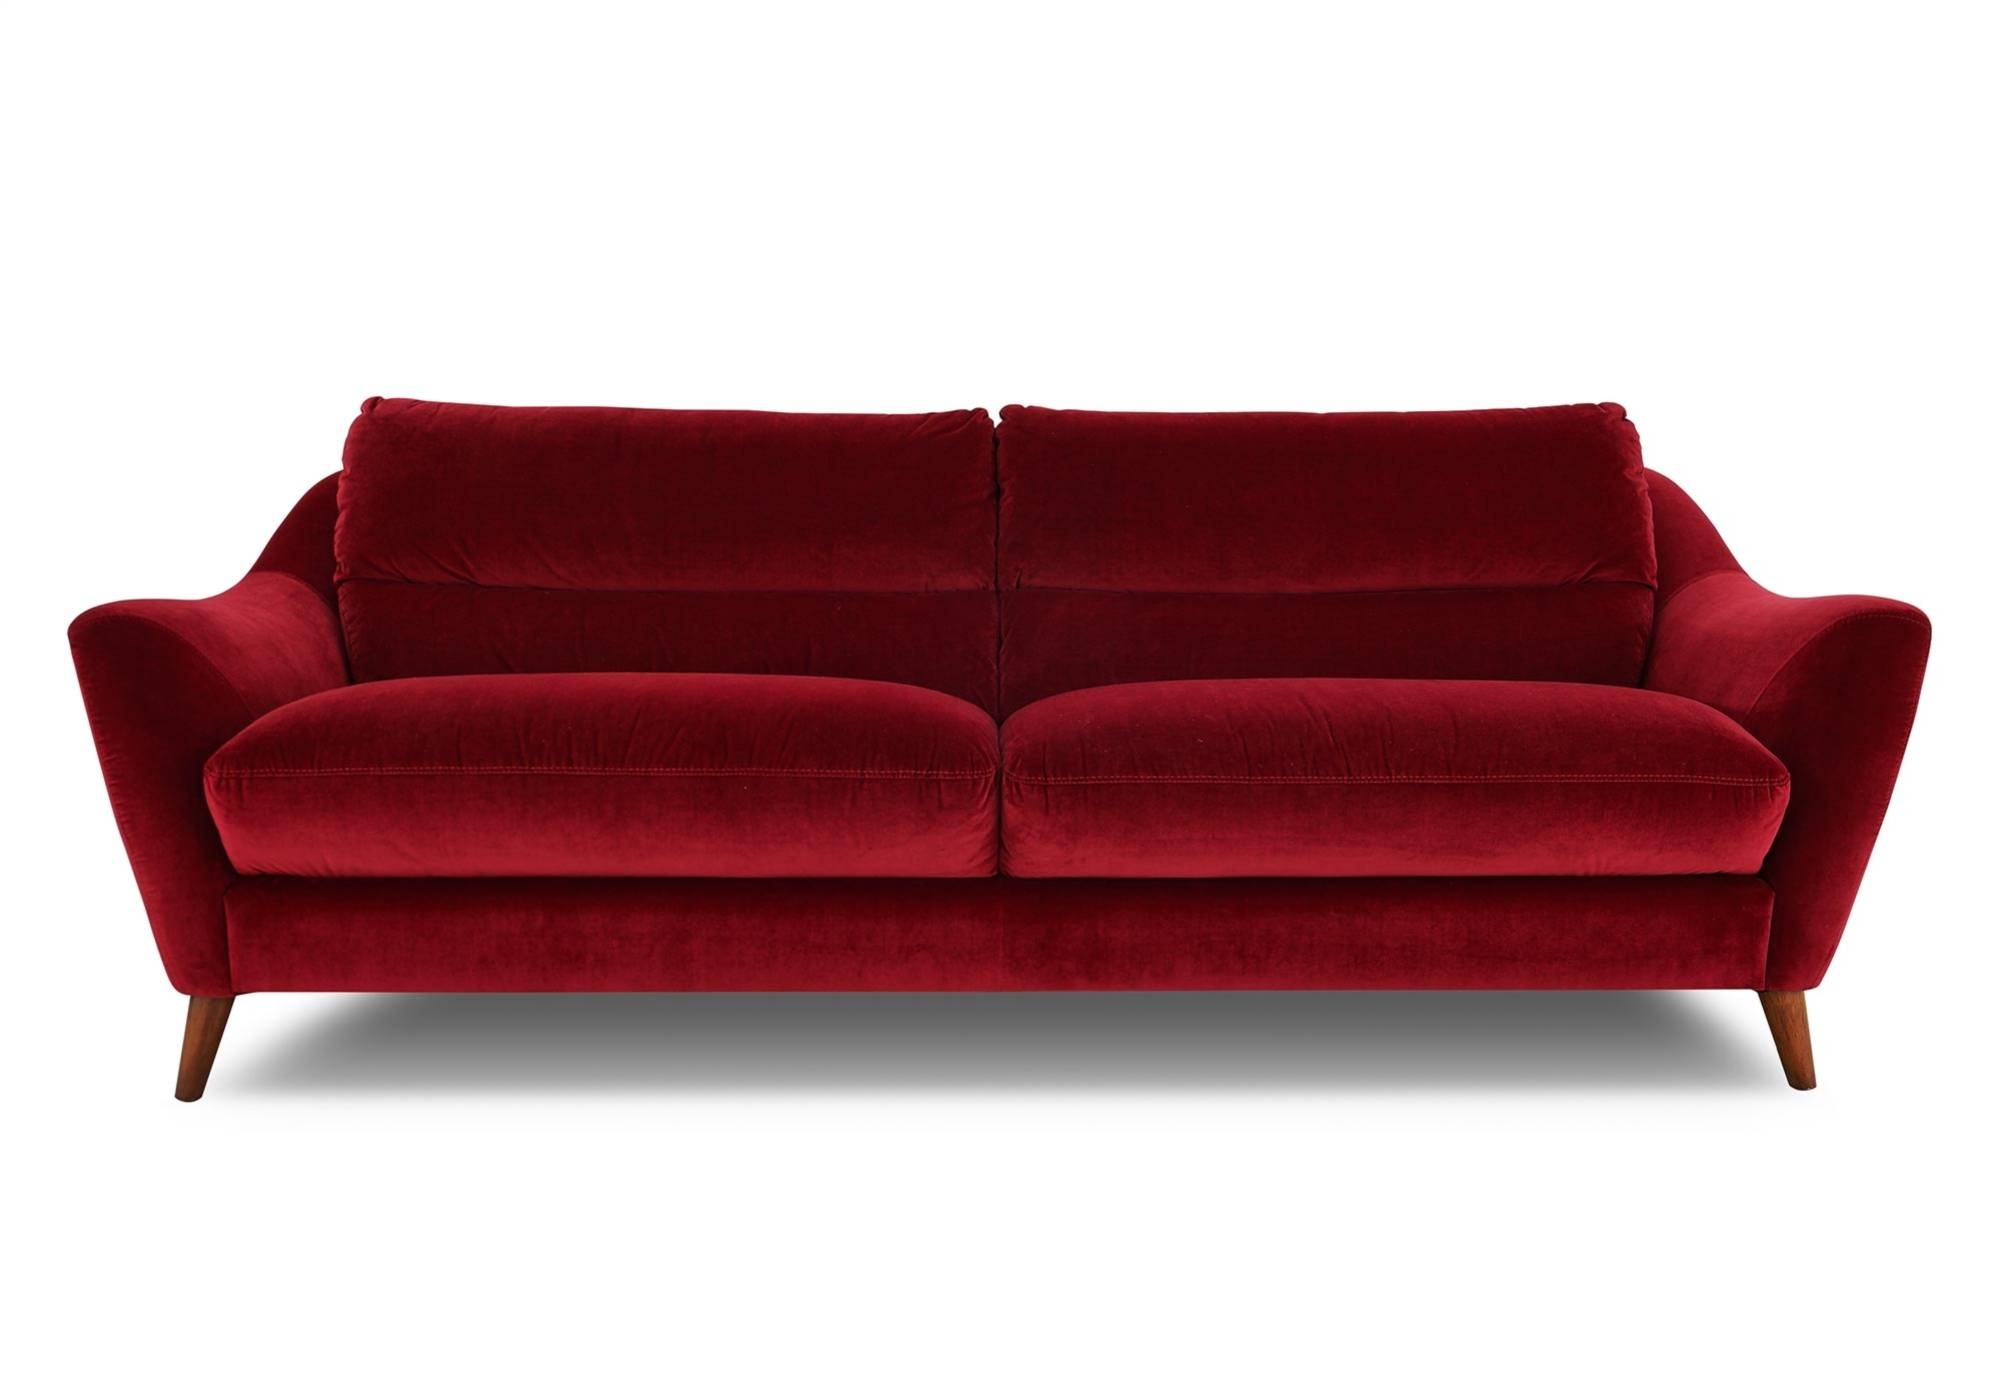 244 Myworld Sofaphilippe Starck | Cassina | Tehranmix Decoration pertaining to 3 Seater Sofas For Sale (Image 1 of 30)